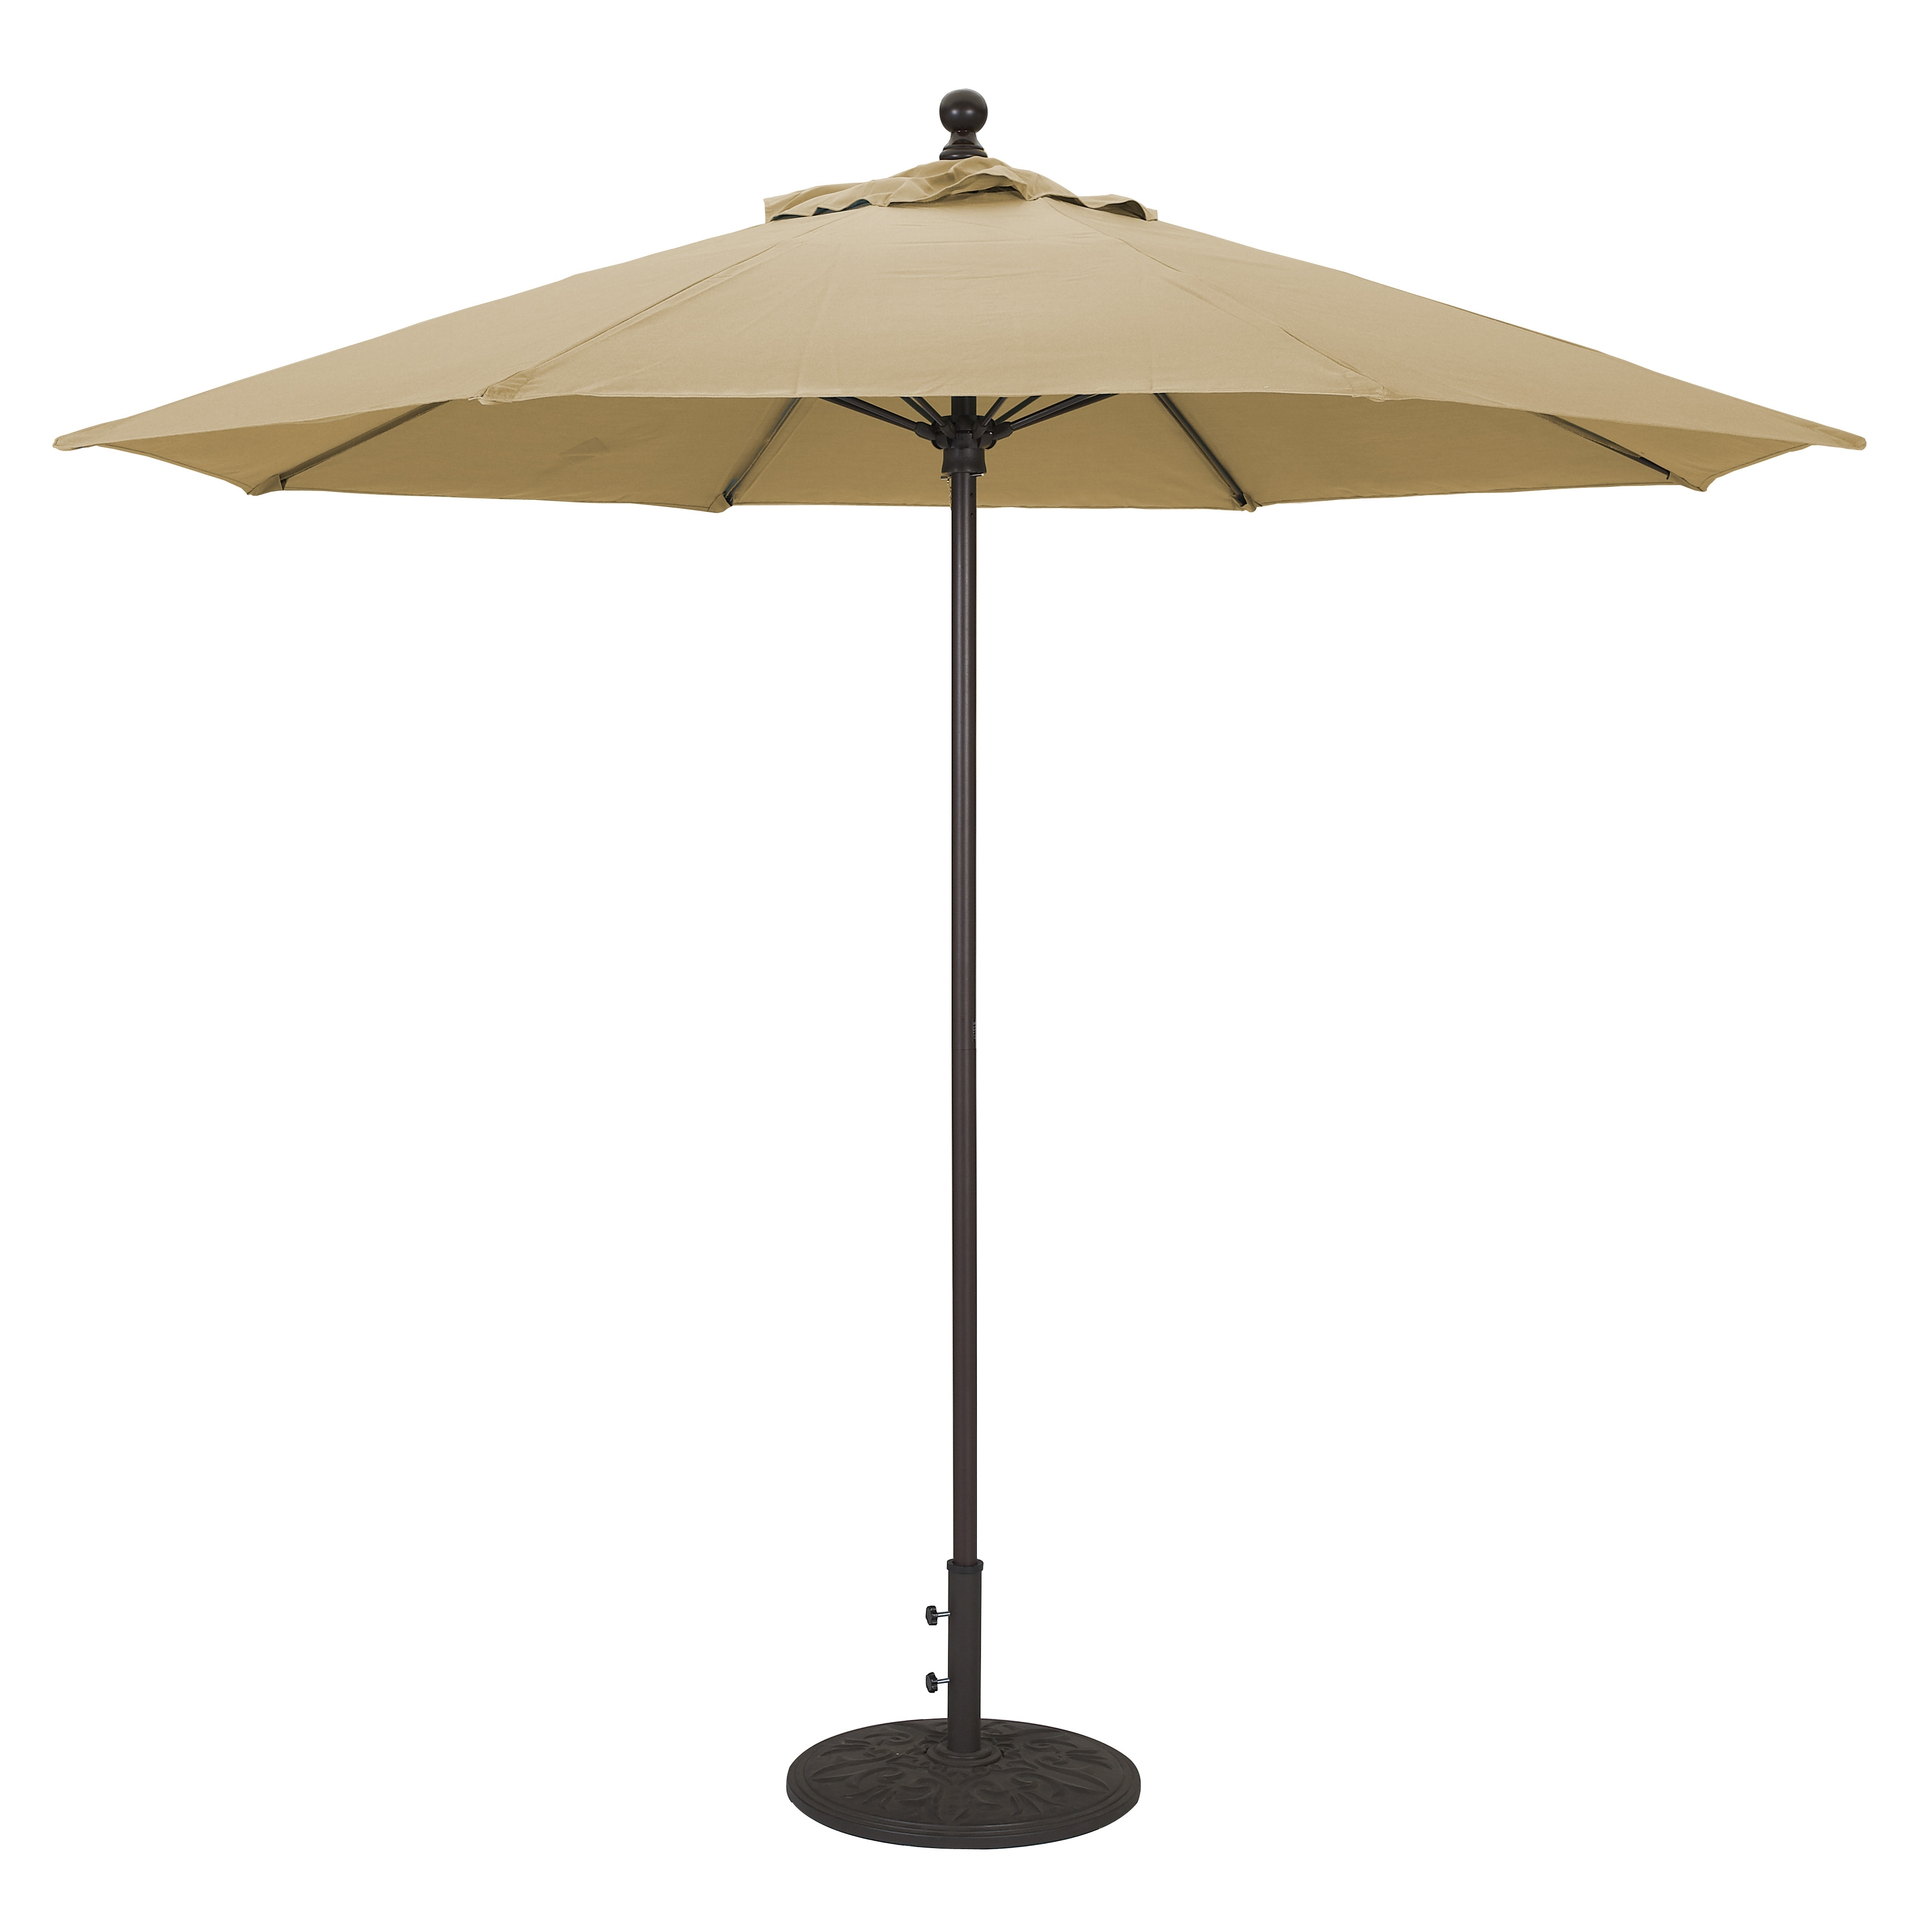 Latest Commercial Patio Umbrellas Sunbrella In Sunbrella Umbrellas (Gallery 16 of 20)